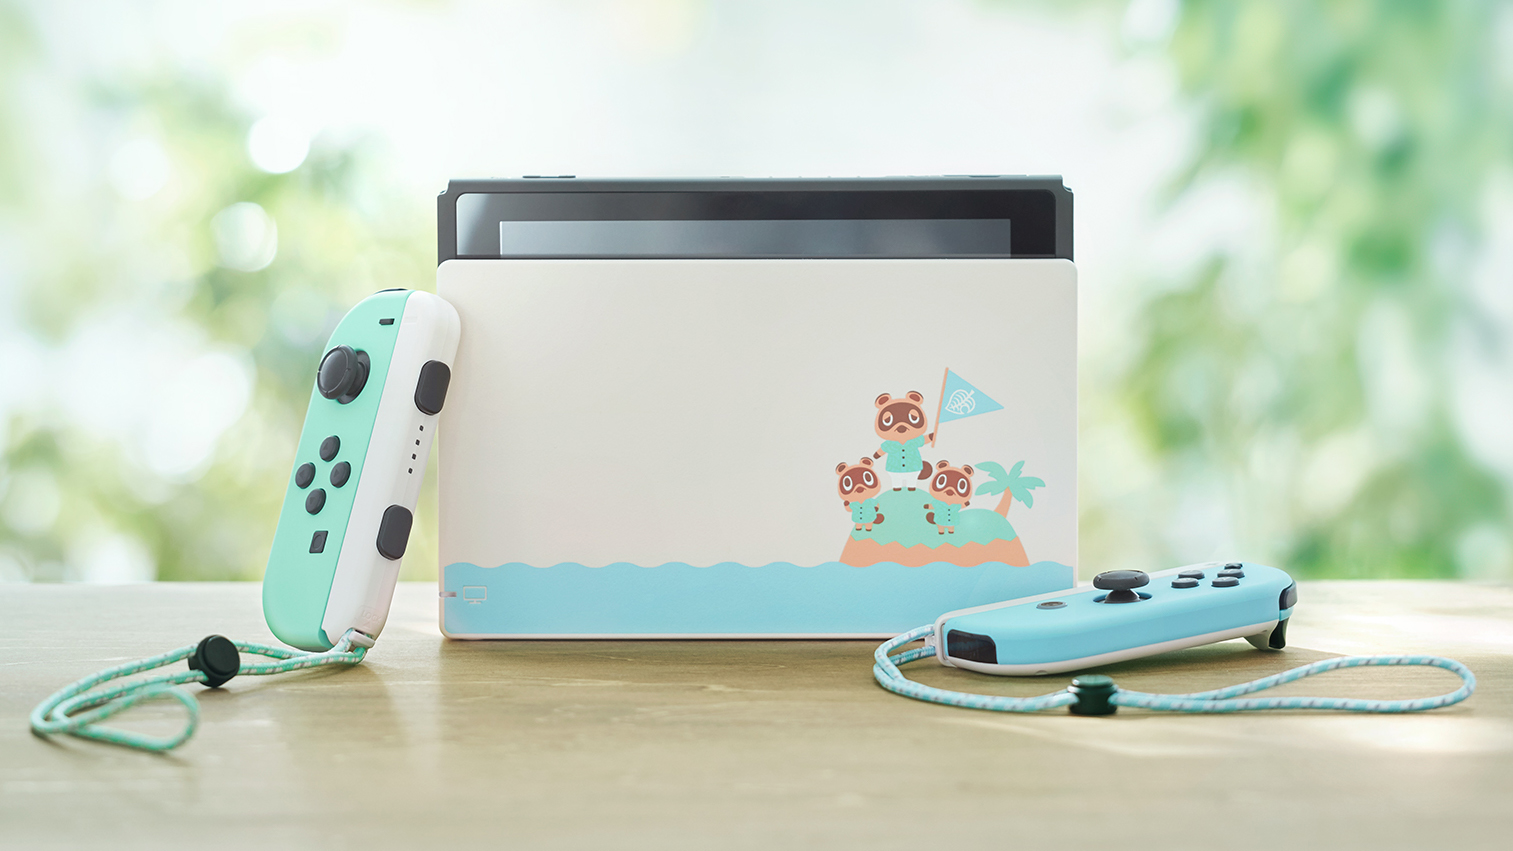 This Animal Crossing Switch Console Is Probably The Cutest Design